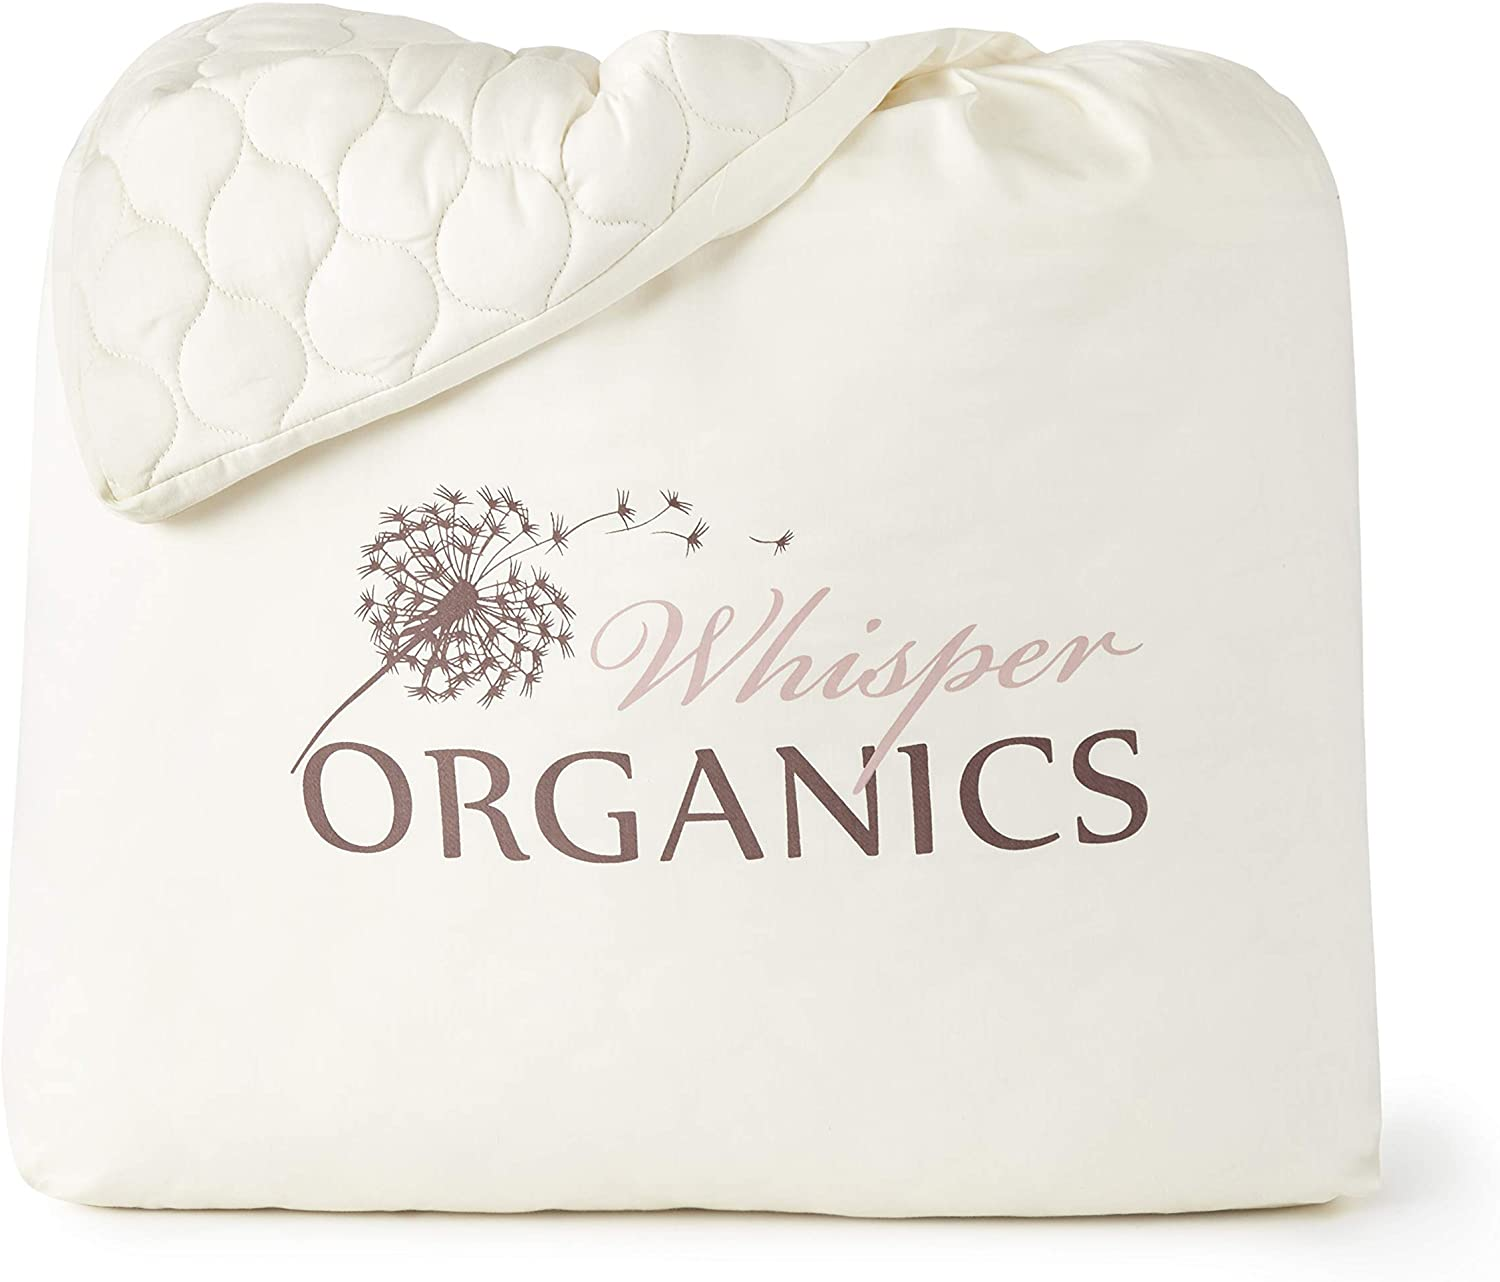 GOTS Certified Breathable Mattress Protector Whisper Organics 100/% Organic Cotton Quilted Fitted Mattress Pad Cover 17 Deep Pocket Queen Size